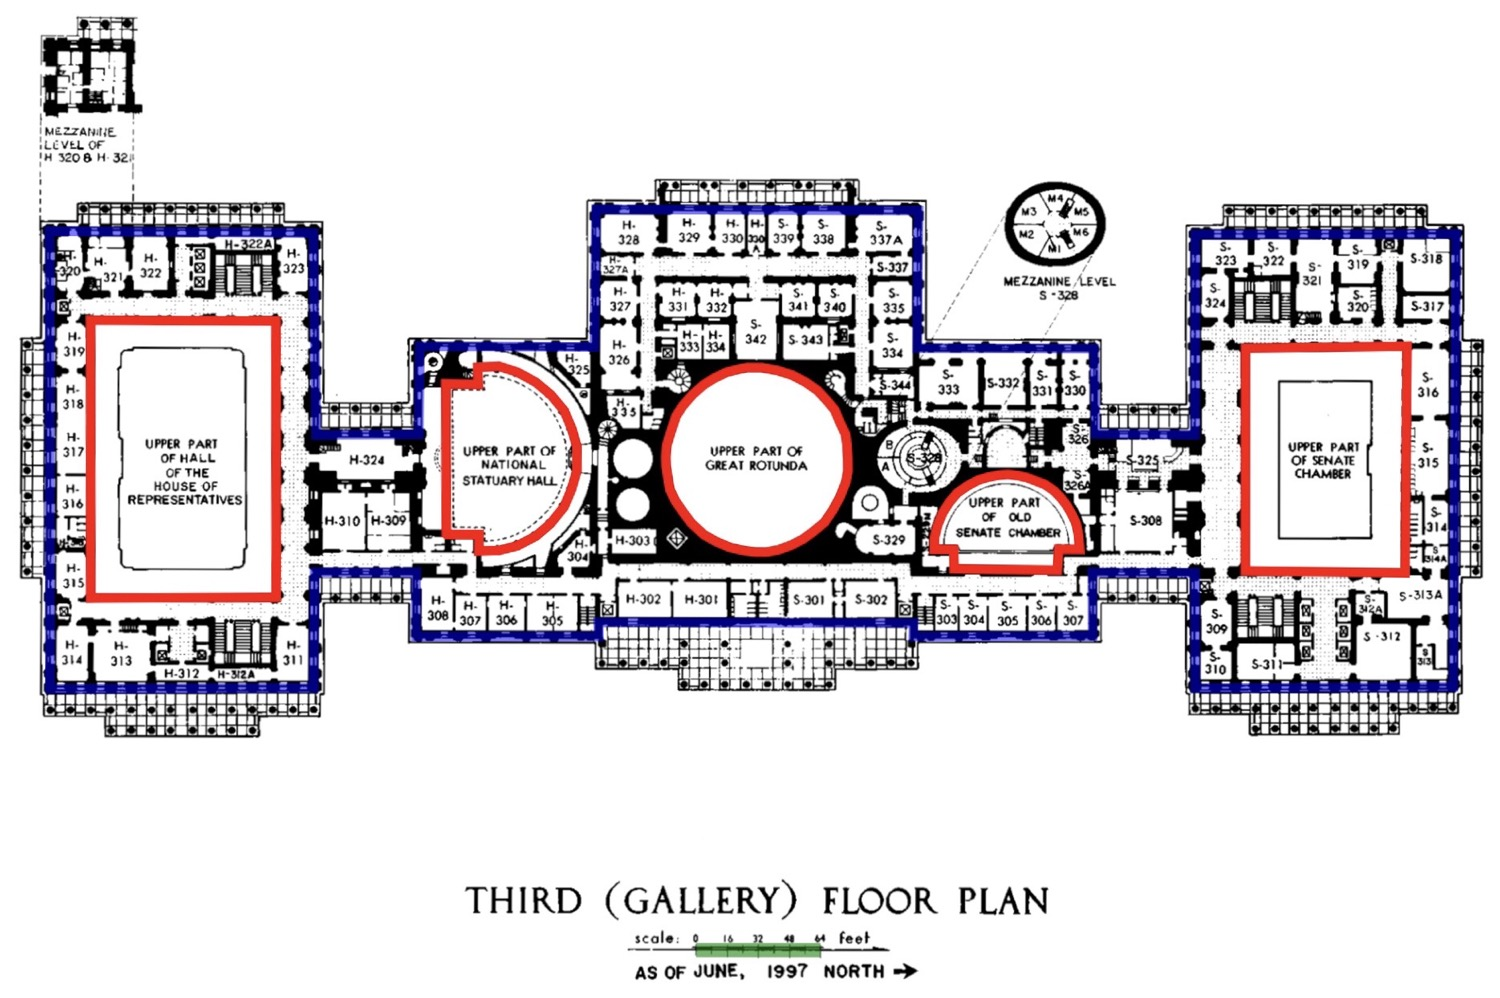 Annotated Capitol floor plan